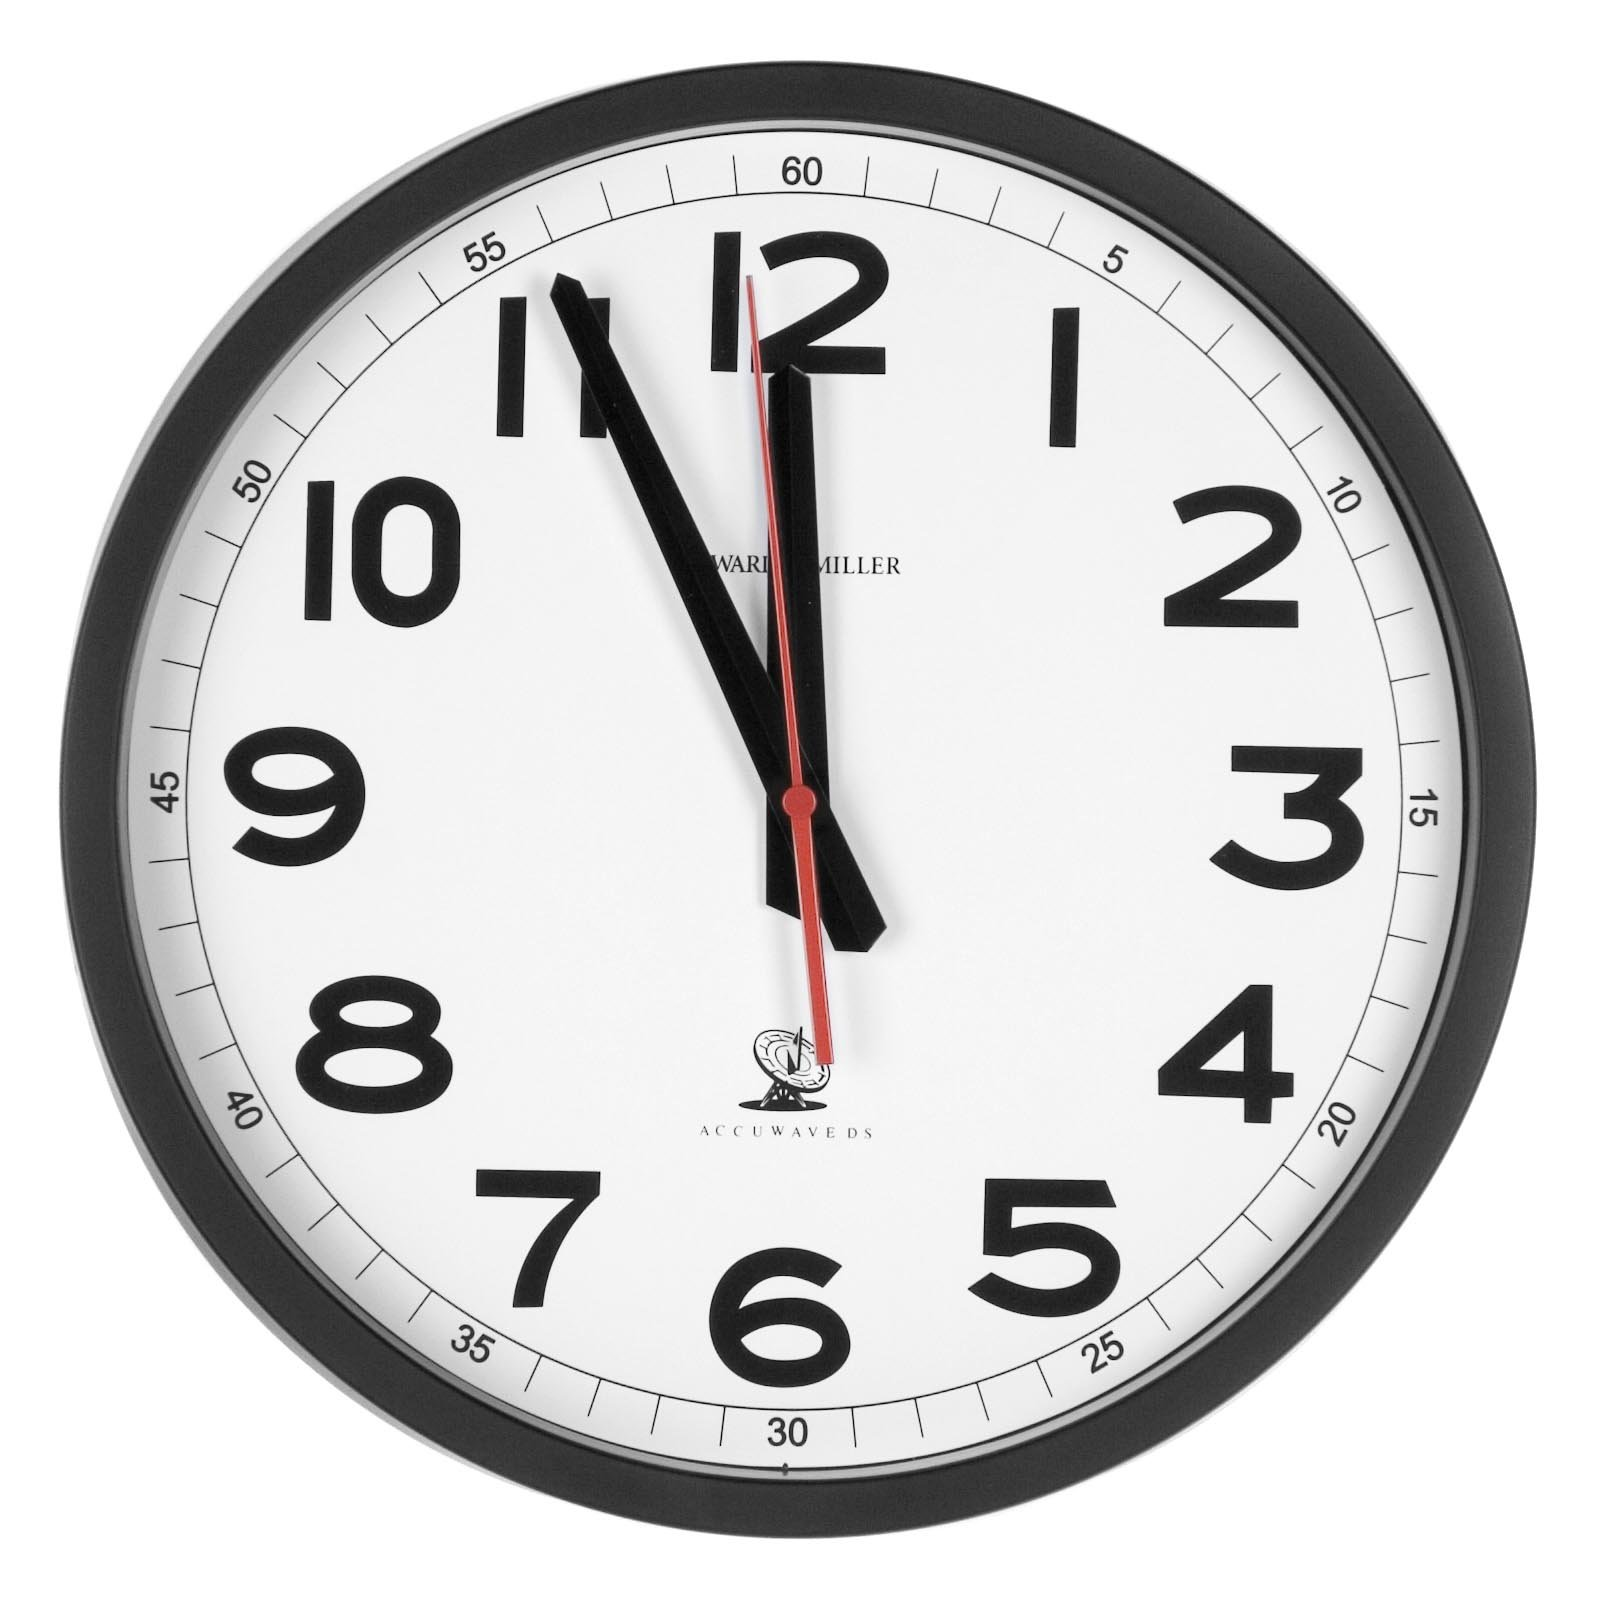 Wall clock by hillllallll on deviantart wall clock by hillllallll wall clock by hillllallll amipublicfo Image collections